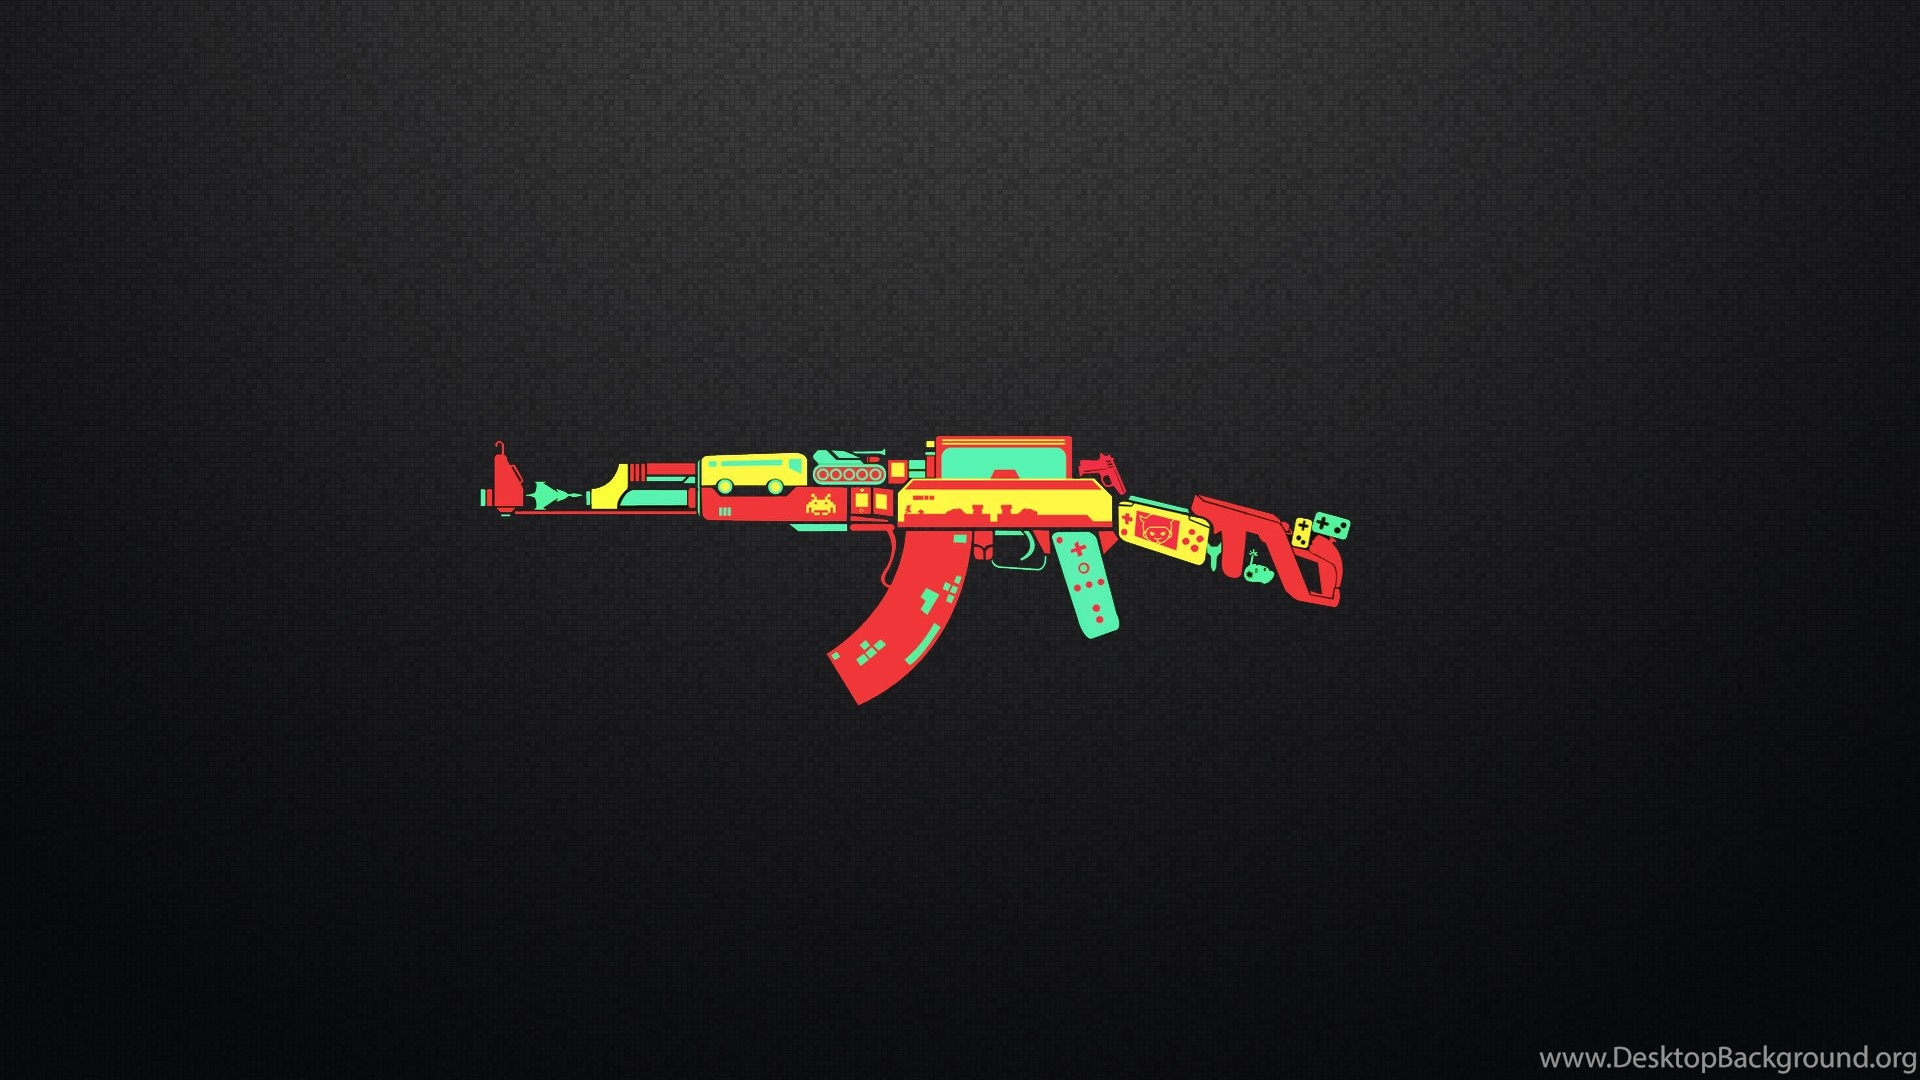 ak 47 controller game weapon funny humor wallpapers desktop background